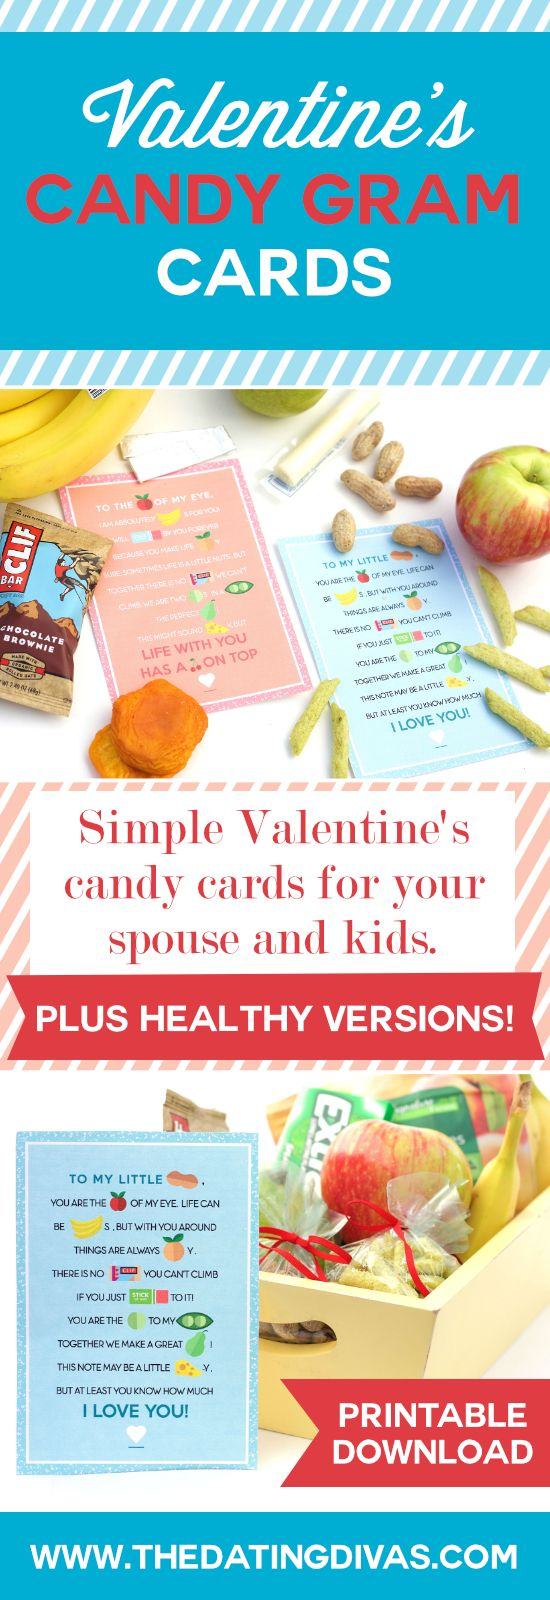 38 Best No Candy Valentine Ideas Images On Pinterest | Valantine Day,  Valentines And Valentine Ideas